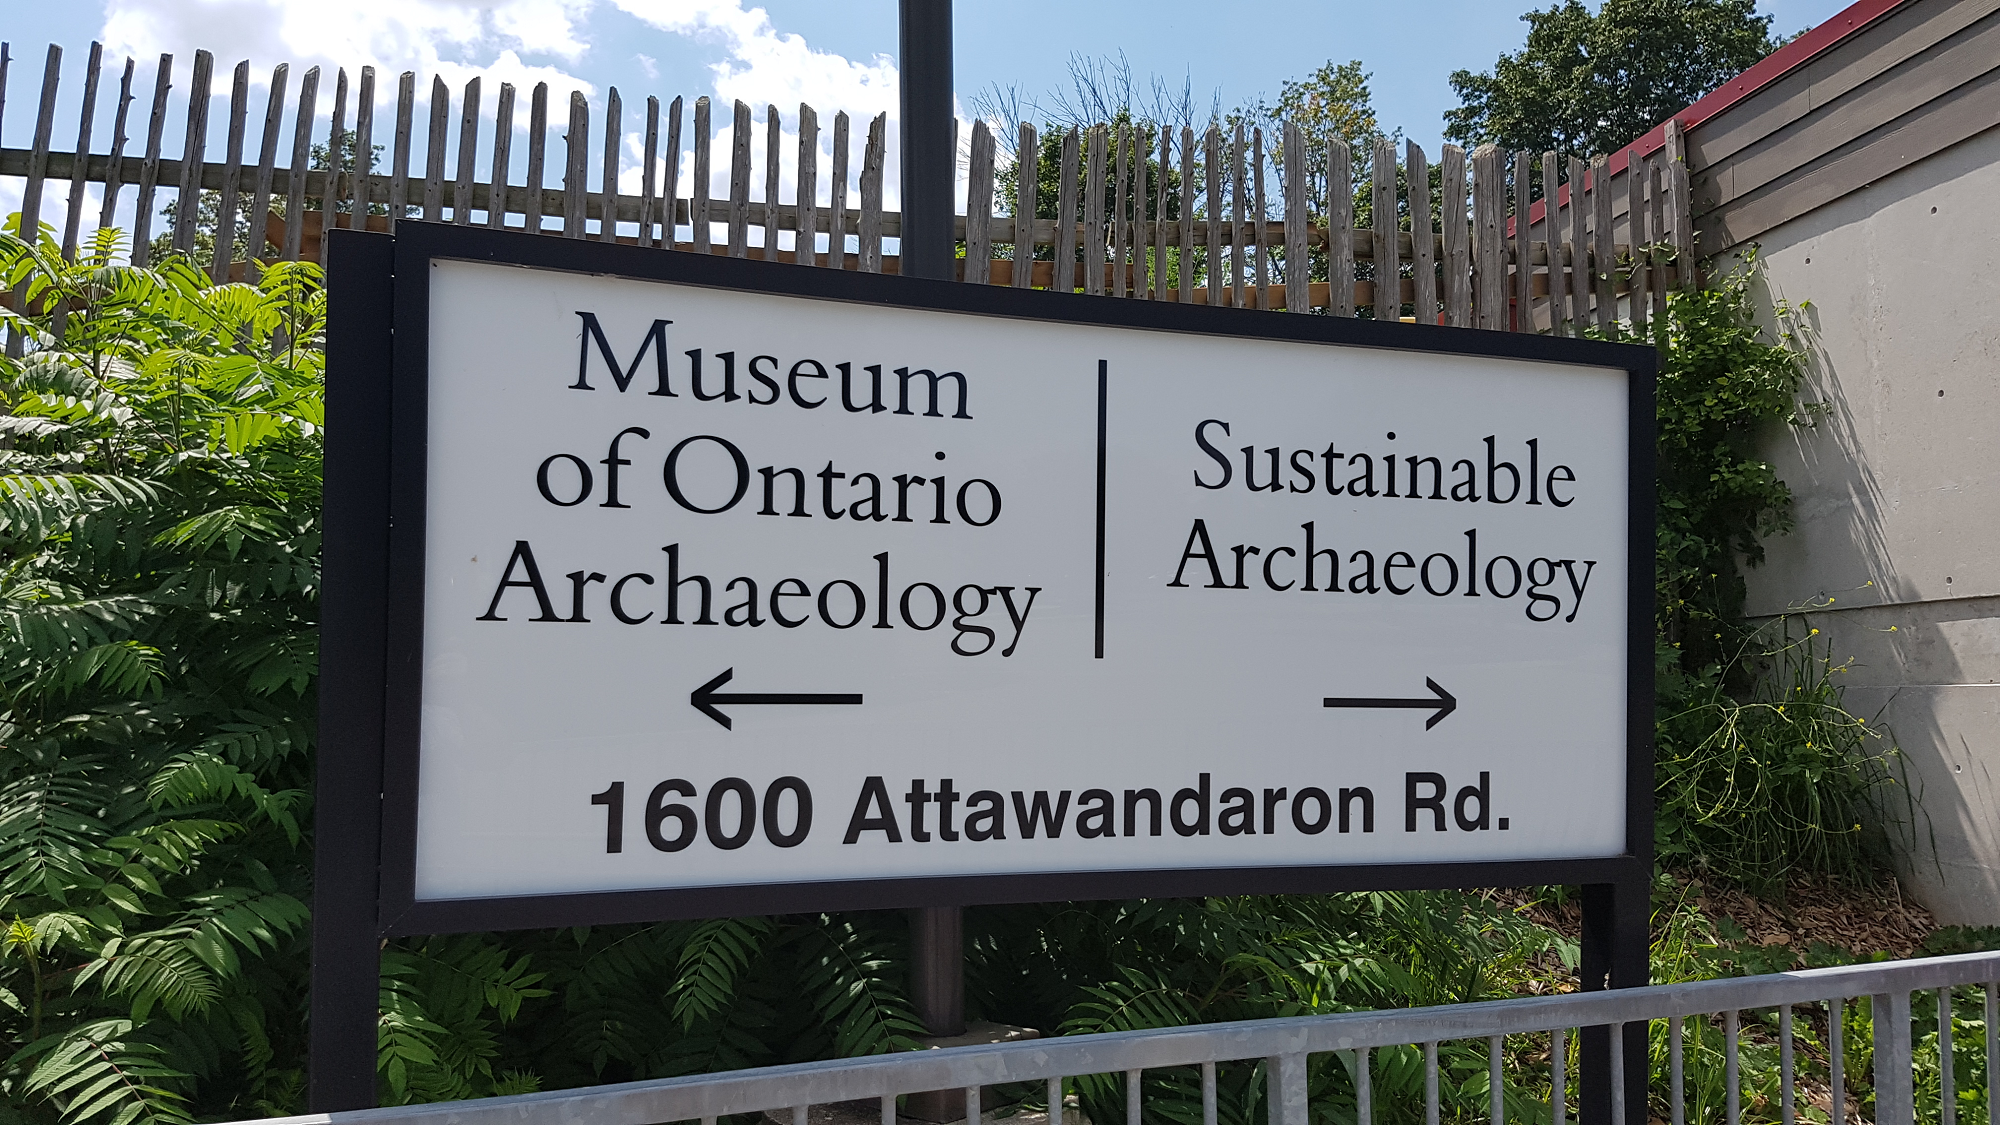 Sustainable Archaeology